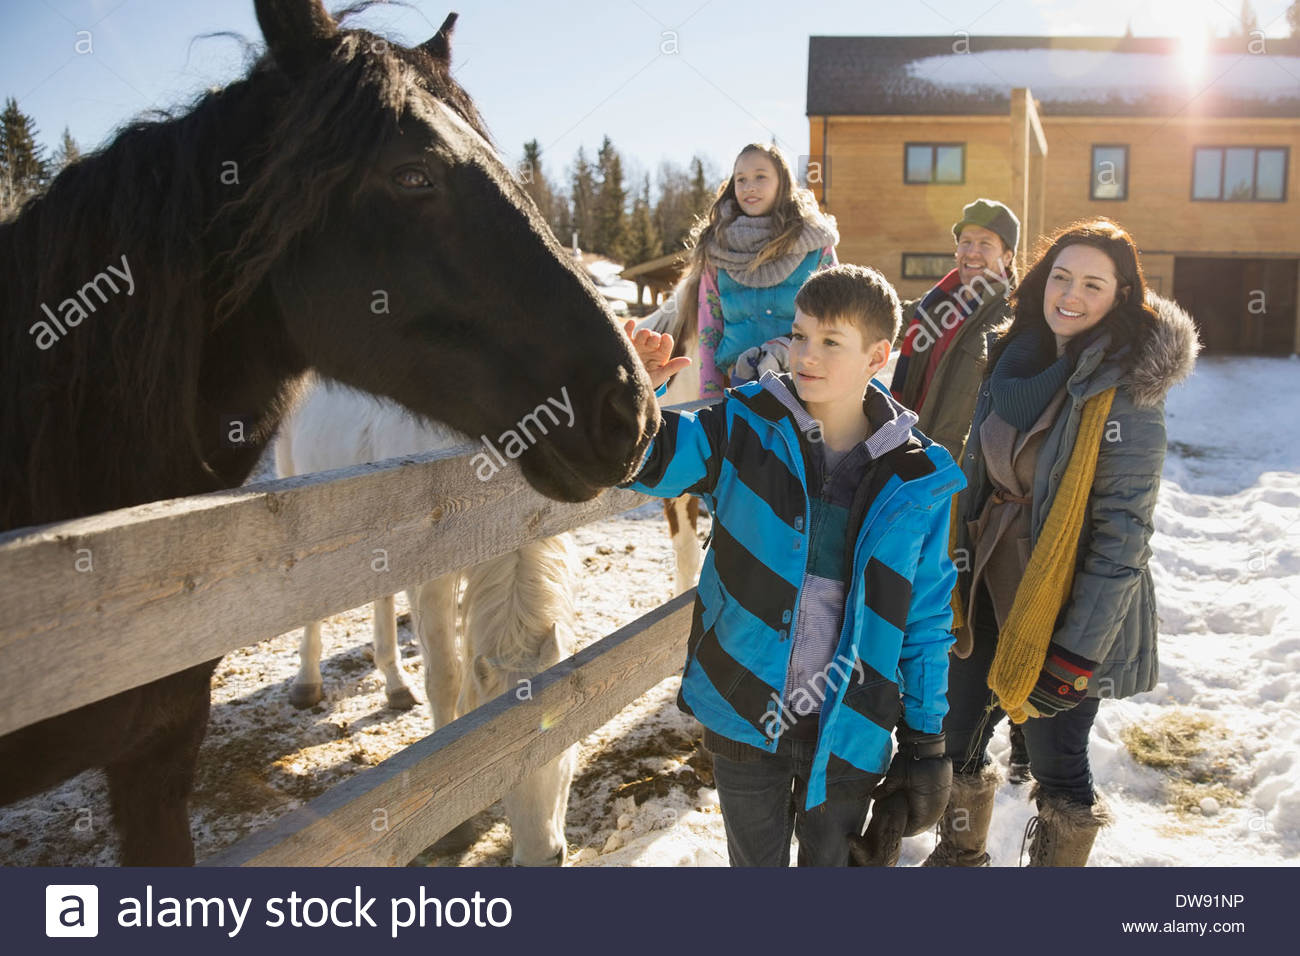 Family visiting horses on winter ranch - Stock Image